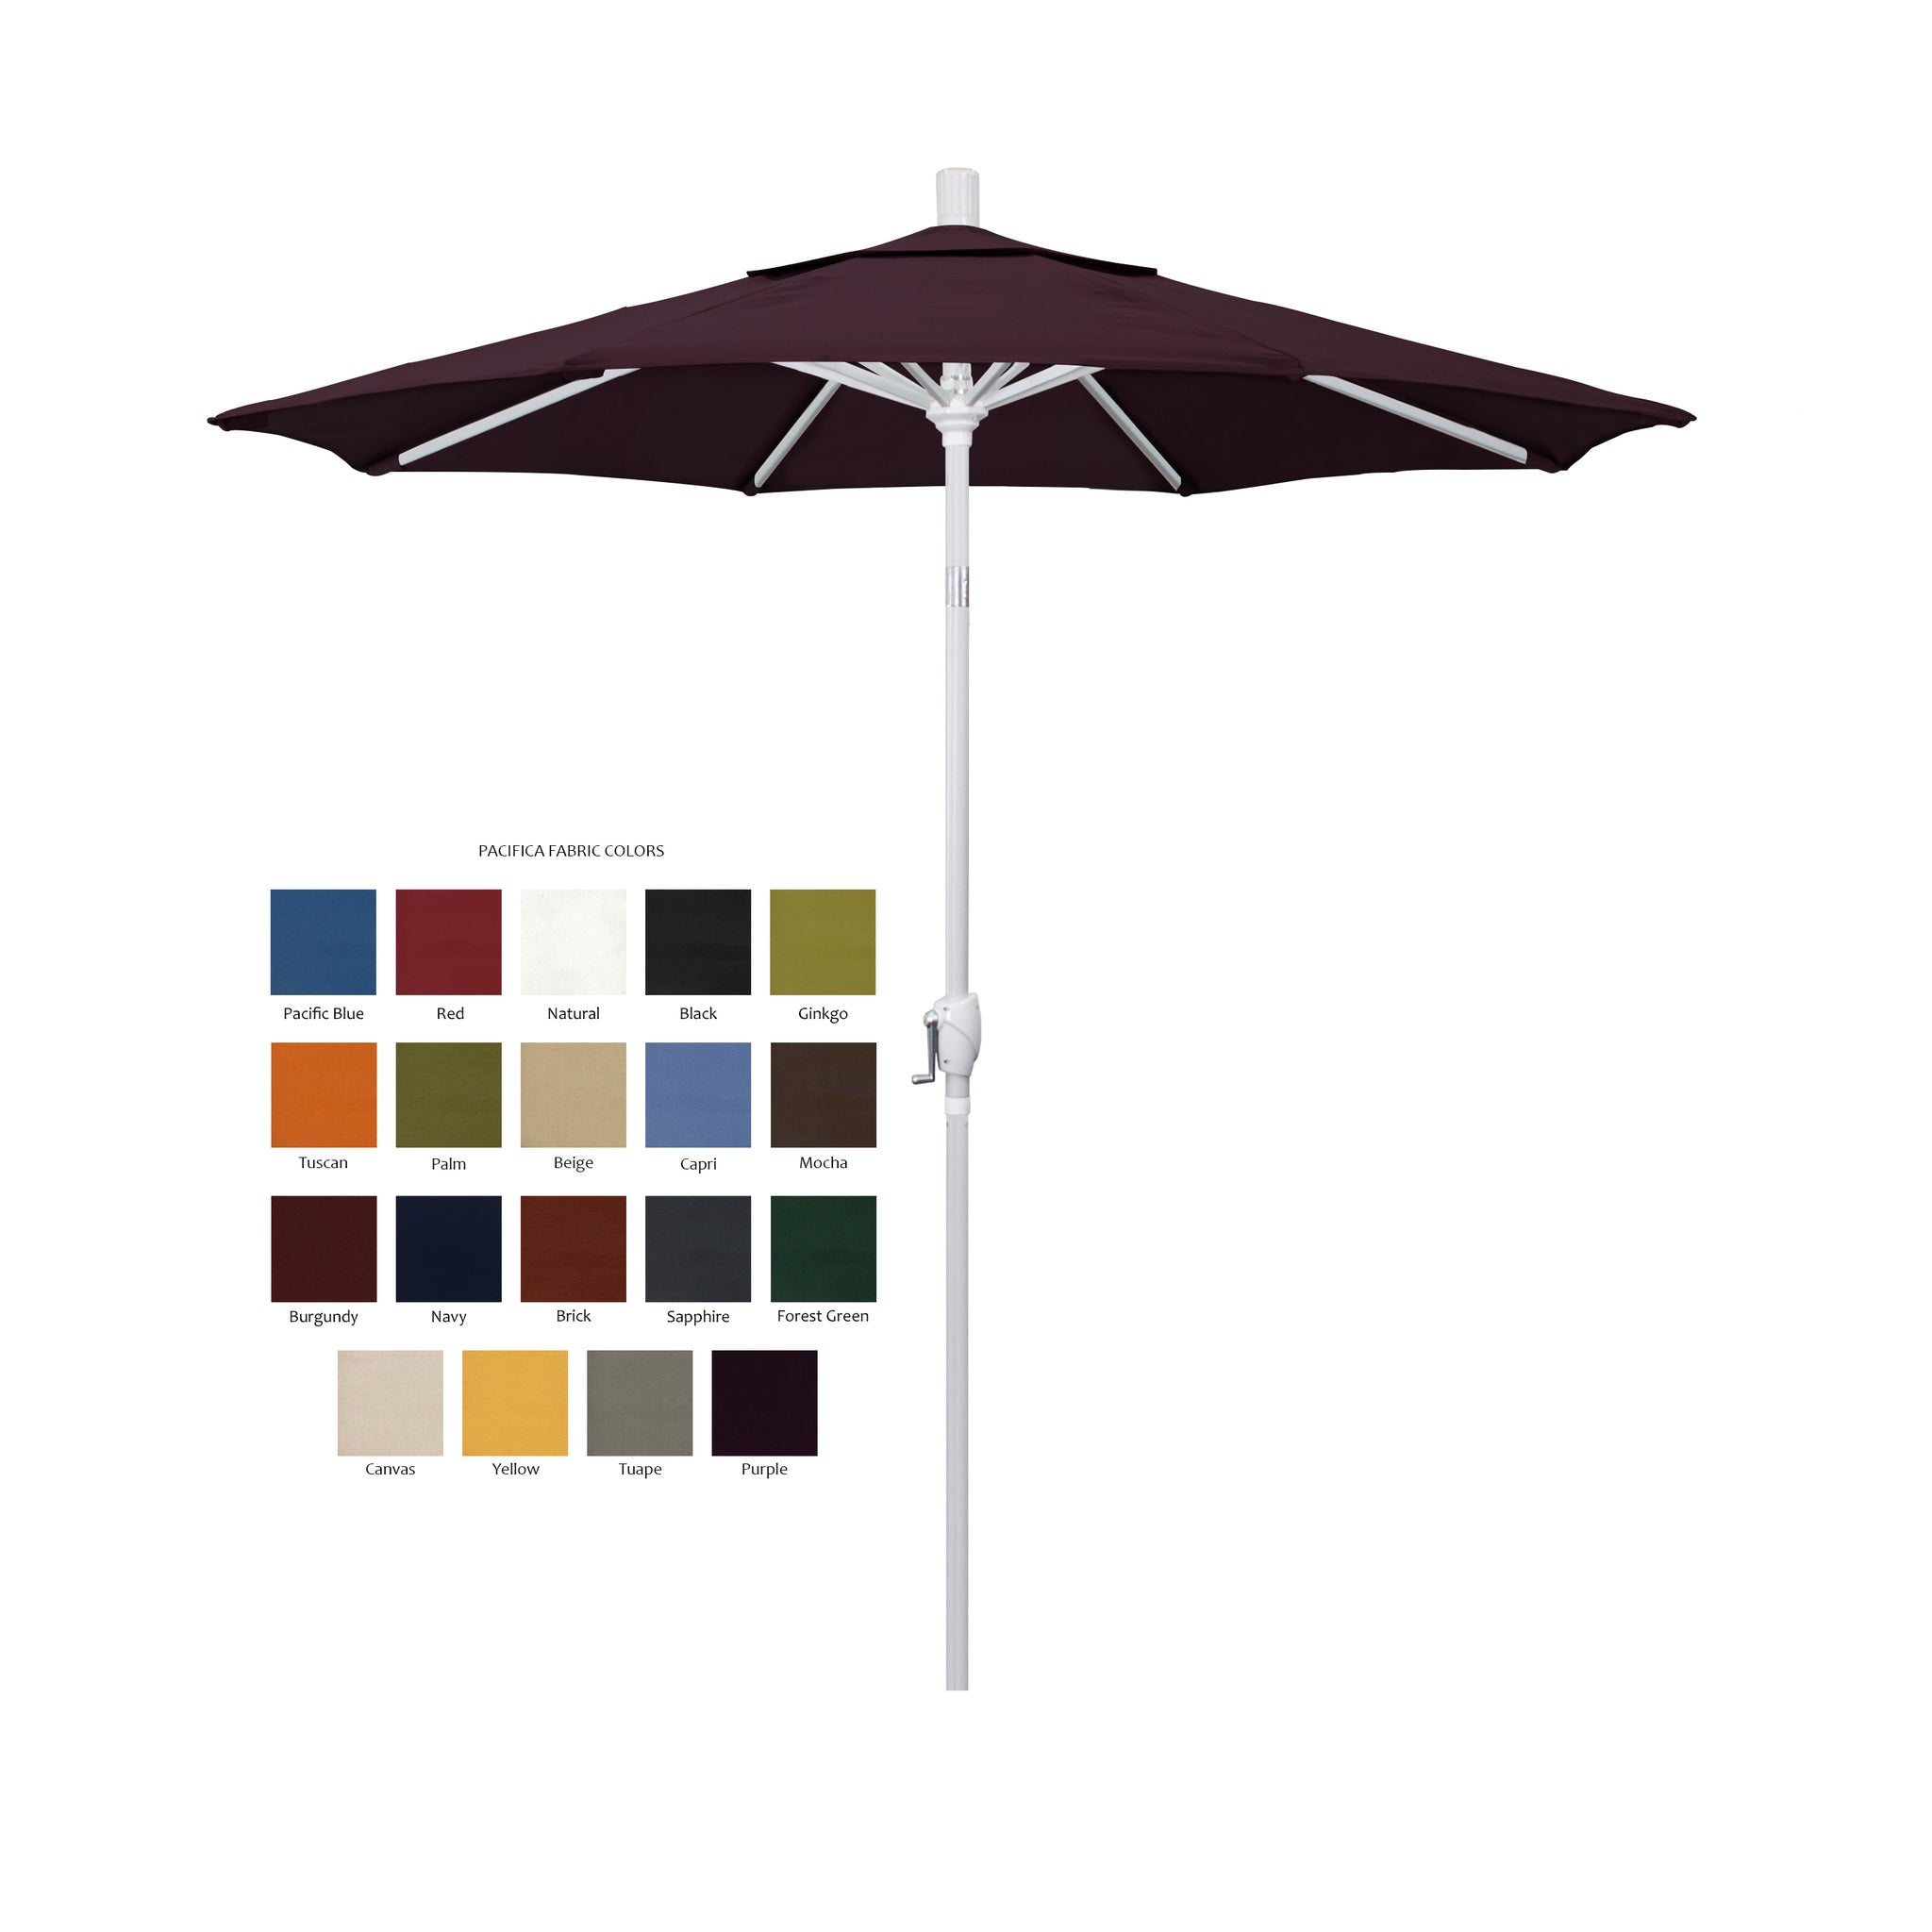 California 7.5u0027 Patio Umbrella With Push Button Tilt And Crank Lift With  Pacifica Fabric And